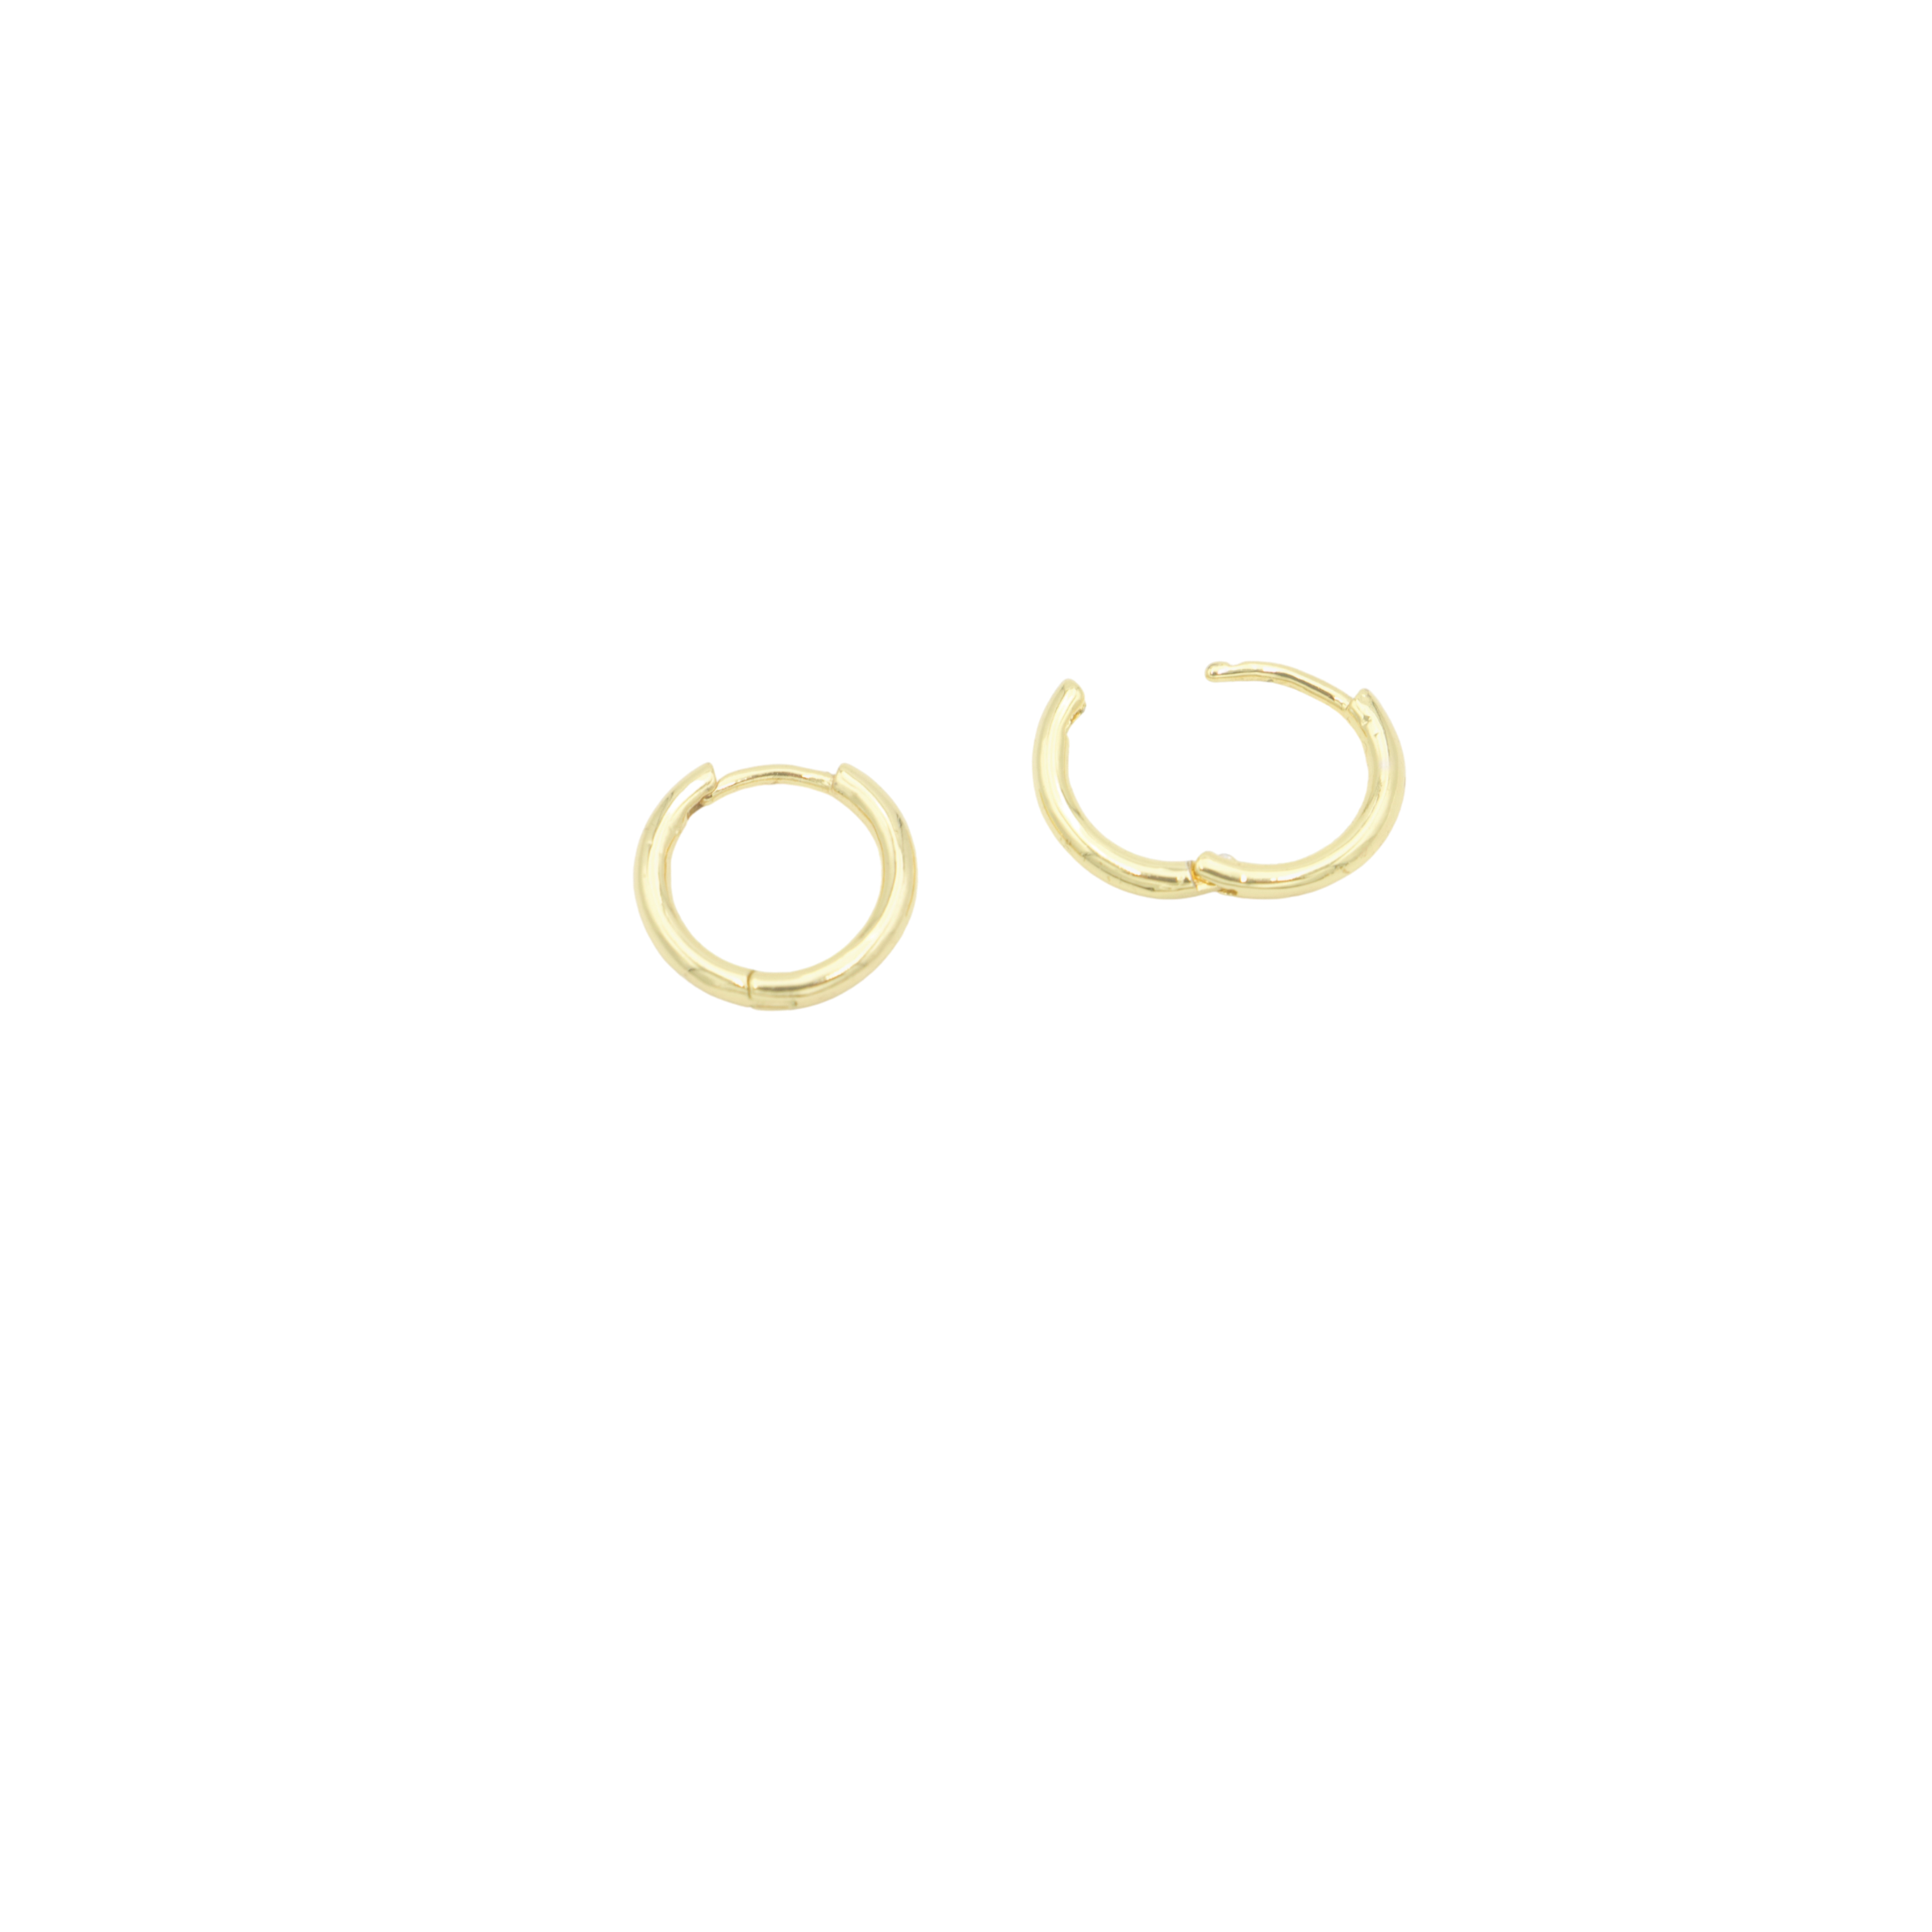 AW Boutique's 14mm diameter Everyday Sleeper earrings are a stylish take on the traditional sleeper, and also the perfect earring to layer across multiple piercings.